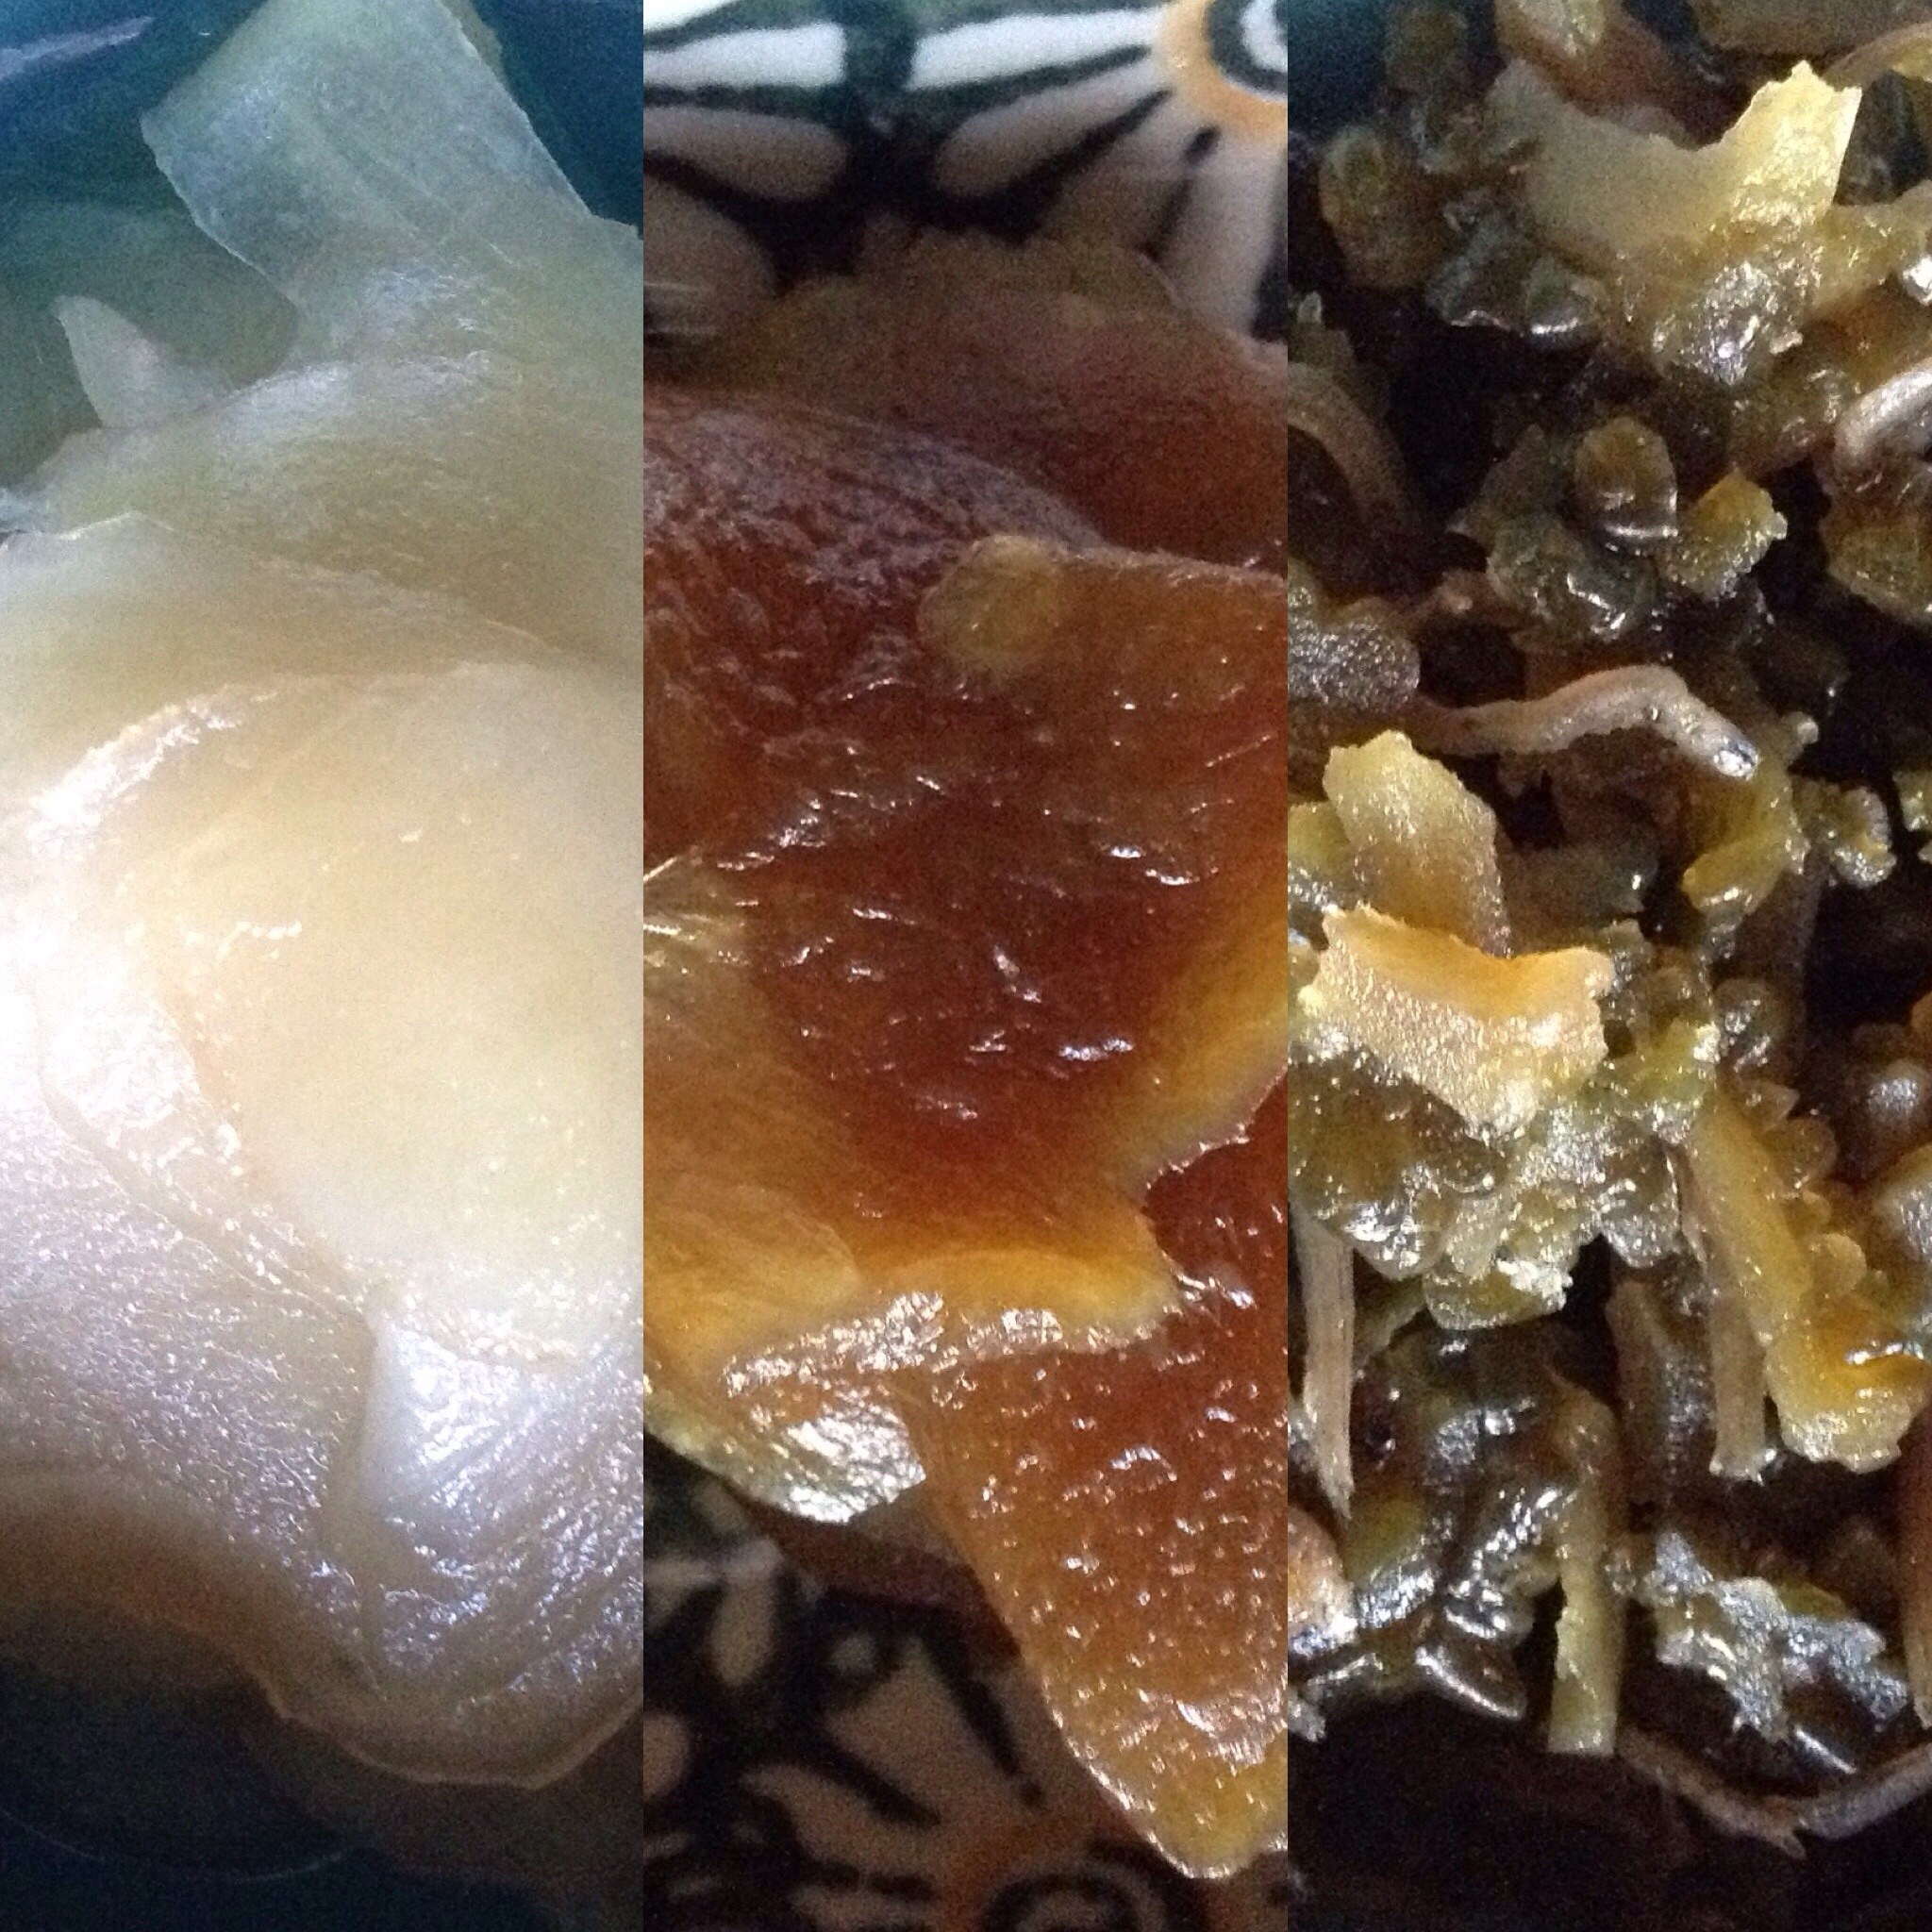 From left to right: ginger in vinegar, candied ginger, gono